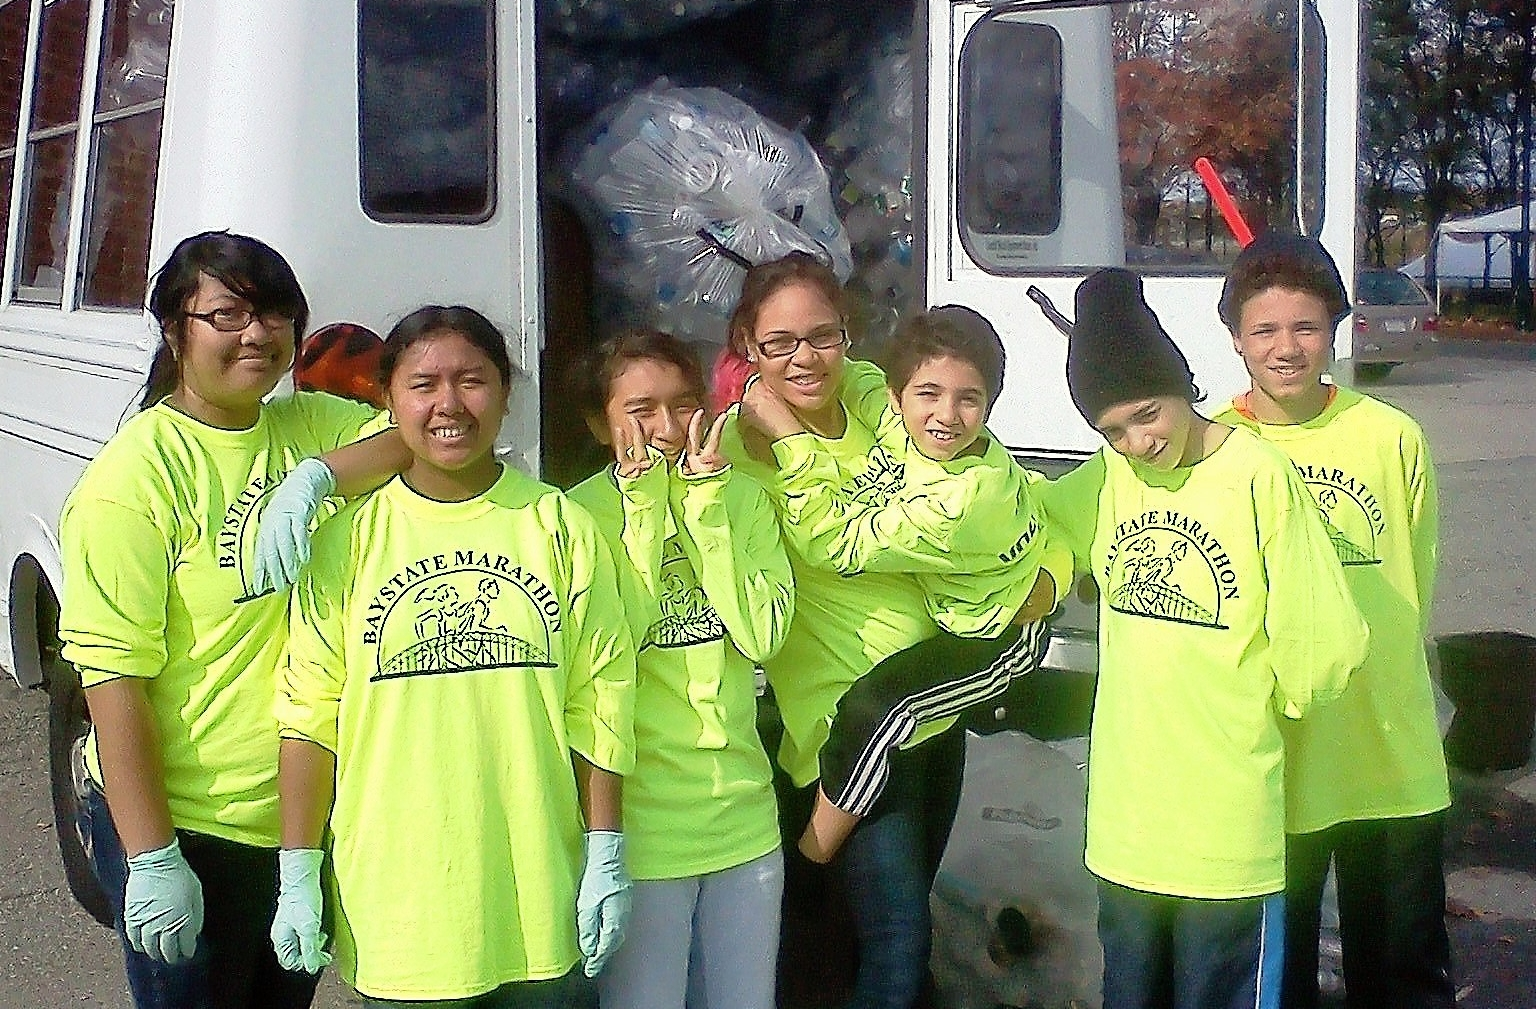 Green Team recycling crew cuts down on waste at the Baystate Marathon